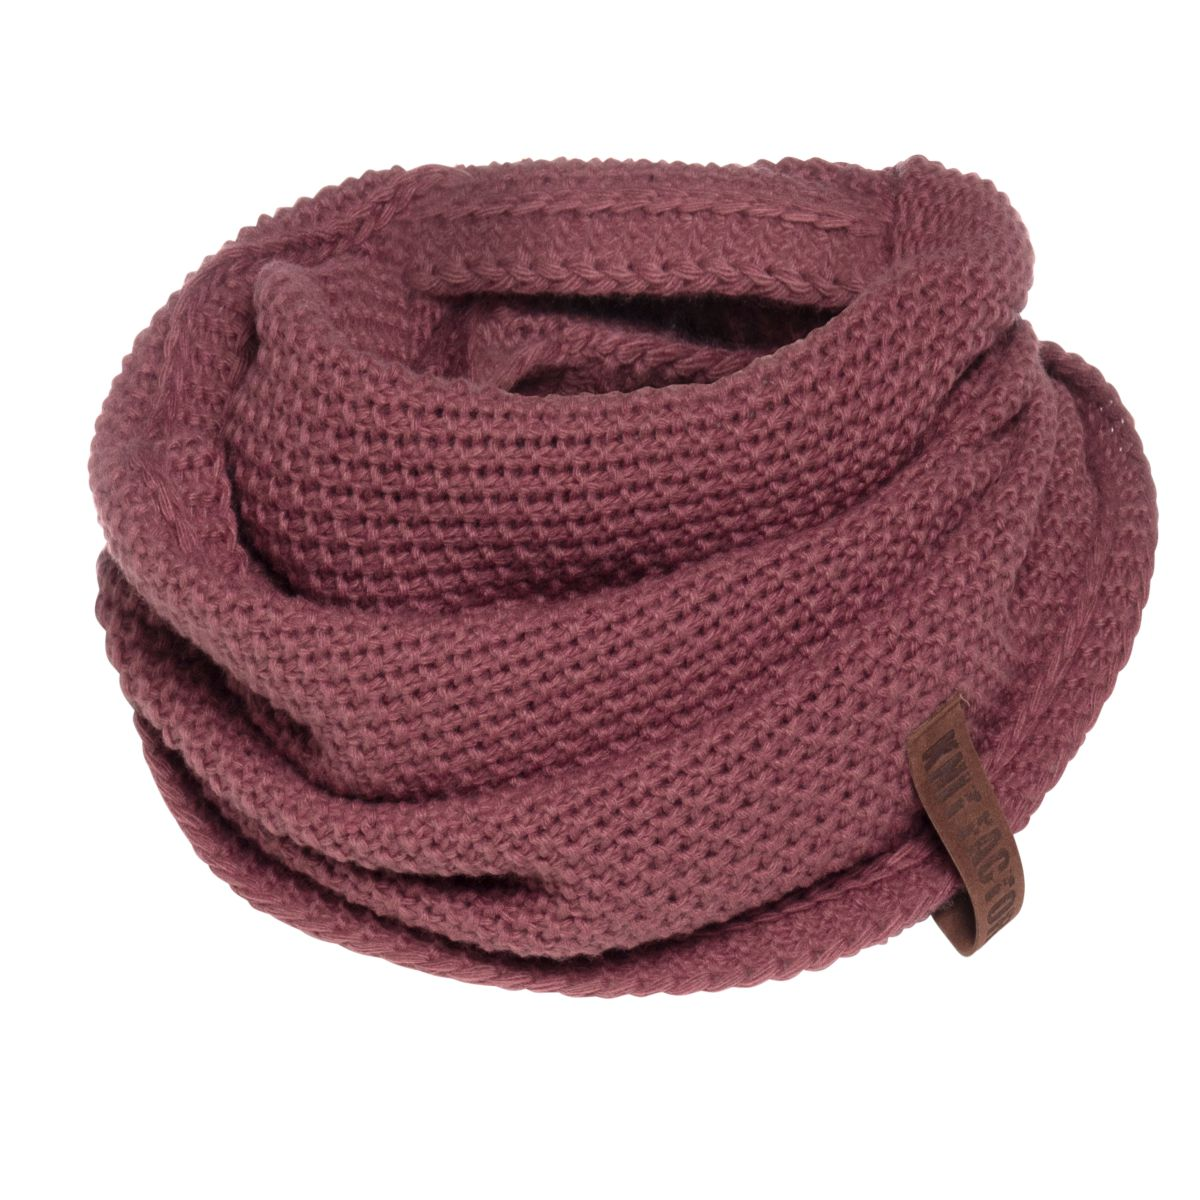 knit factory kf120066038 coco omslagdoek stone red 1